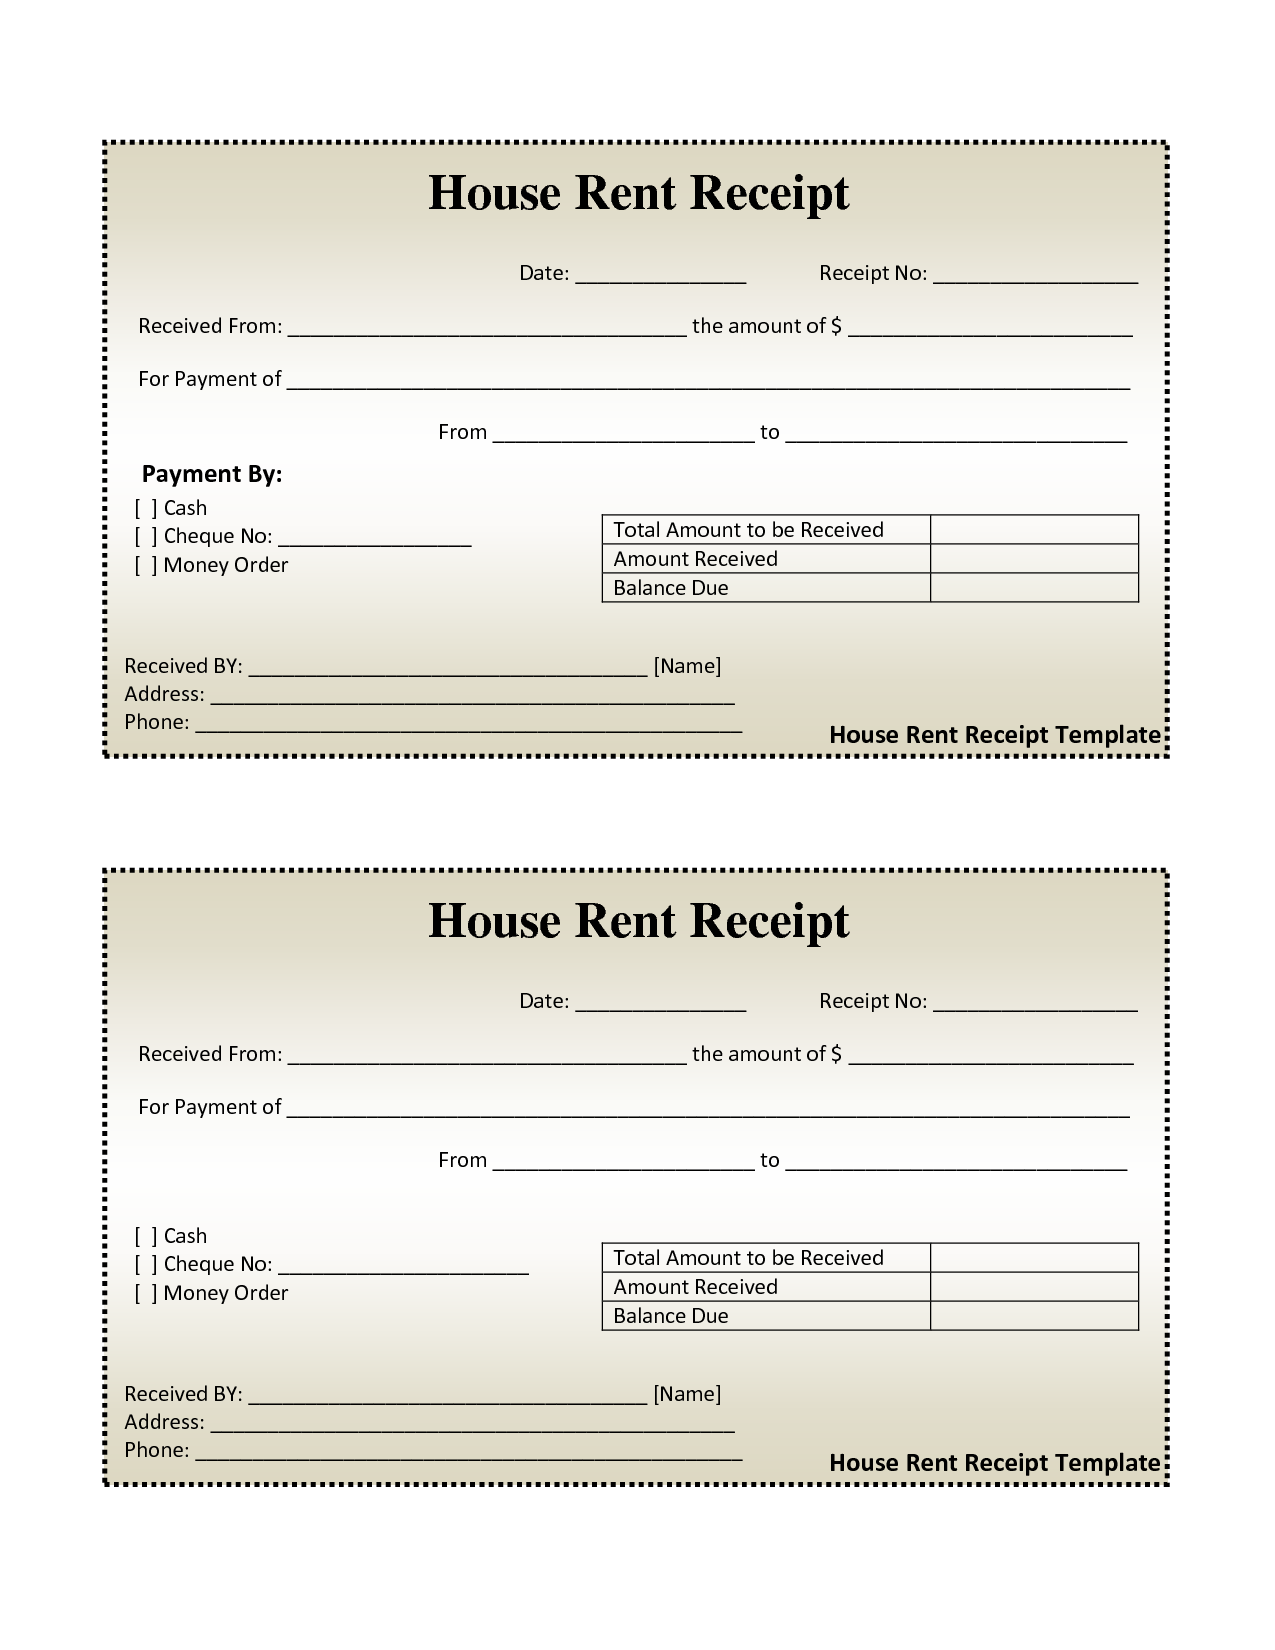 free house rental invoice – Receipt Template Doc